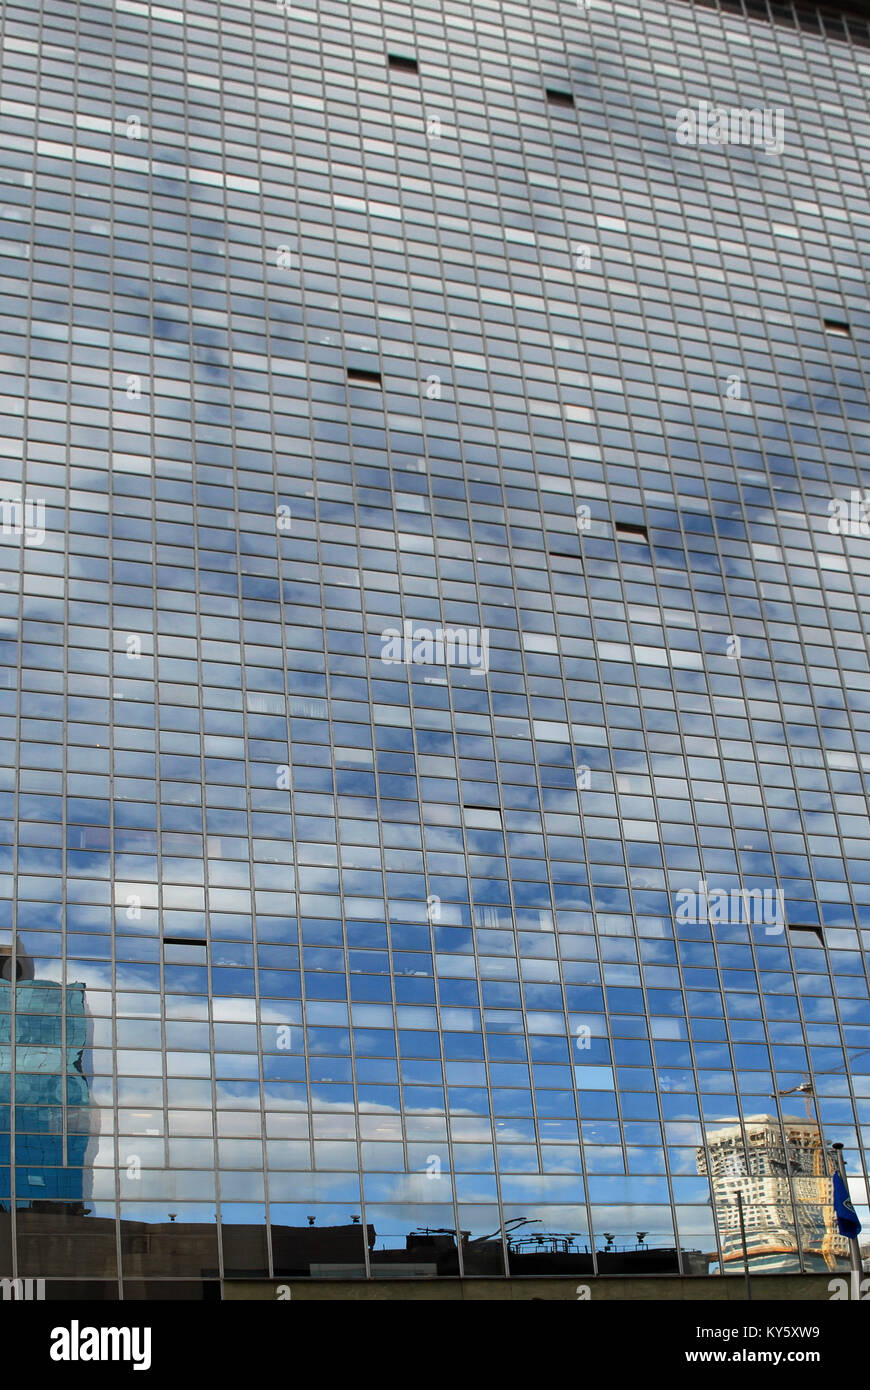 Huge glass wall from windows, in which a round, multi-storey ...